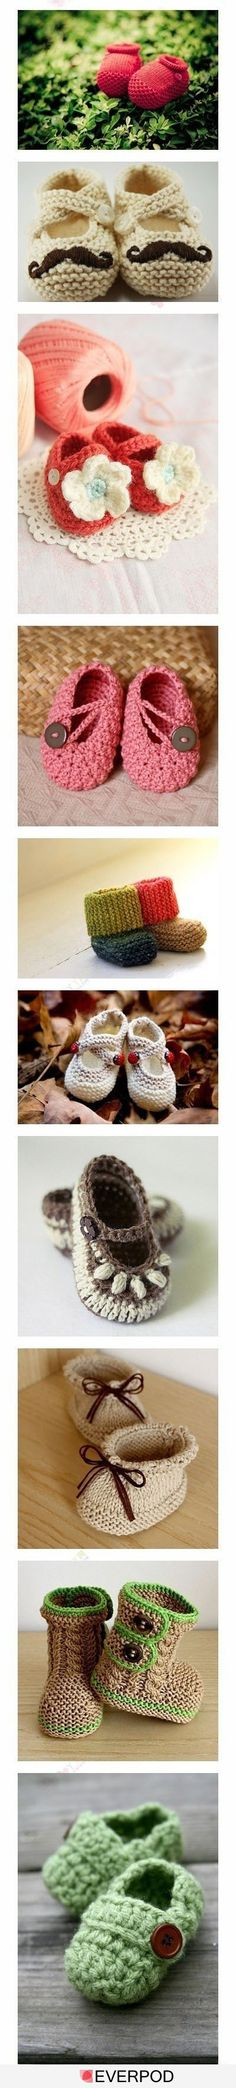 these are adorable! if I ever have a baby girl one day I will learn to crochet just so I can make these for her.